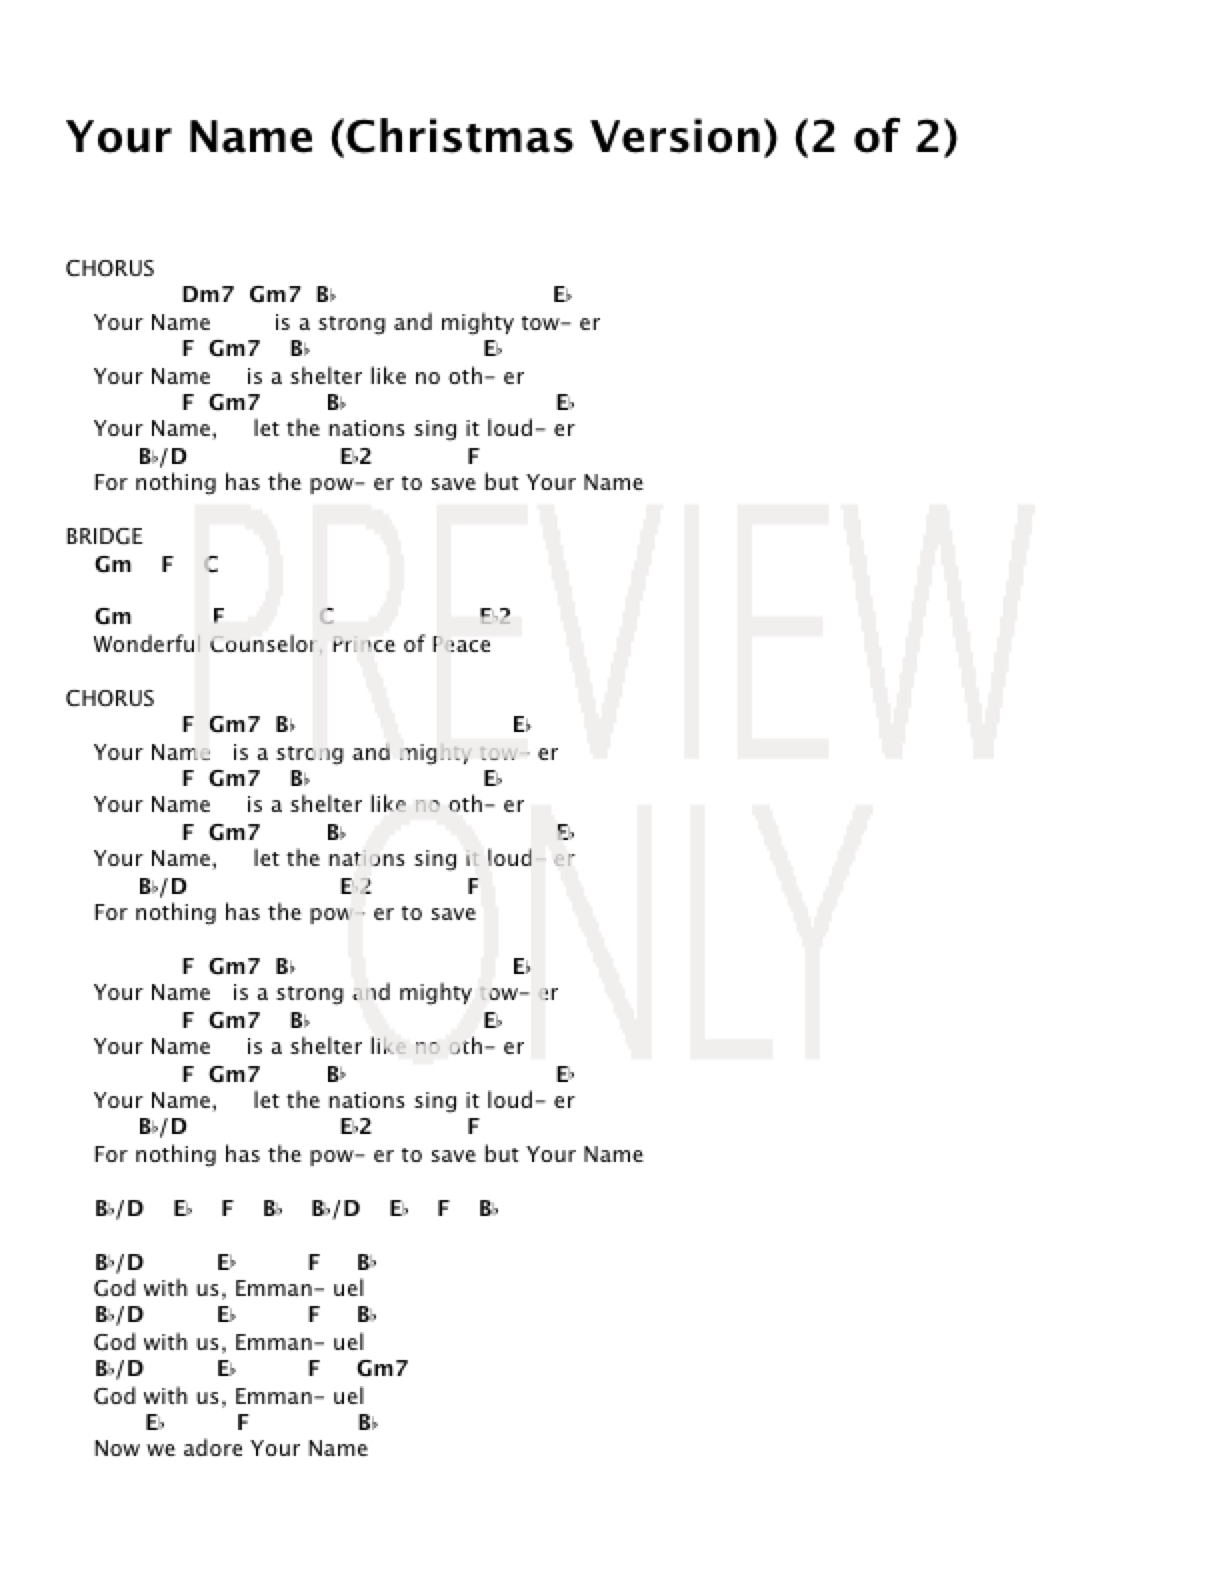 Mighty To Save Chords Your Name Christmas Version Live Lead Sheet Lyrics Chords